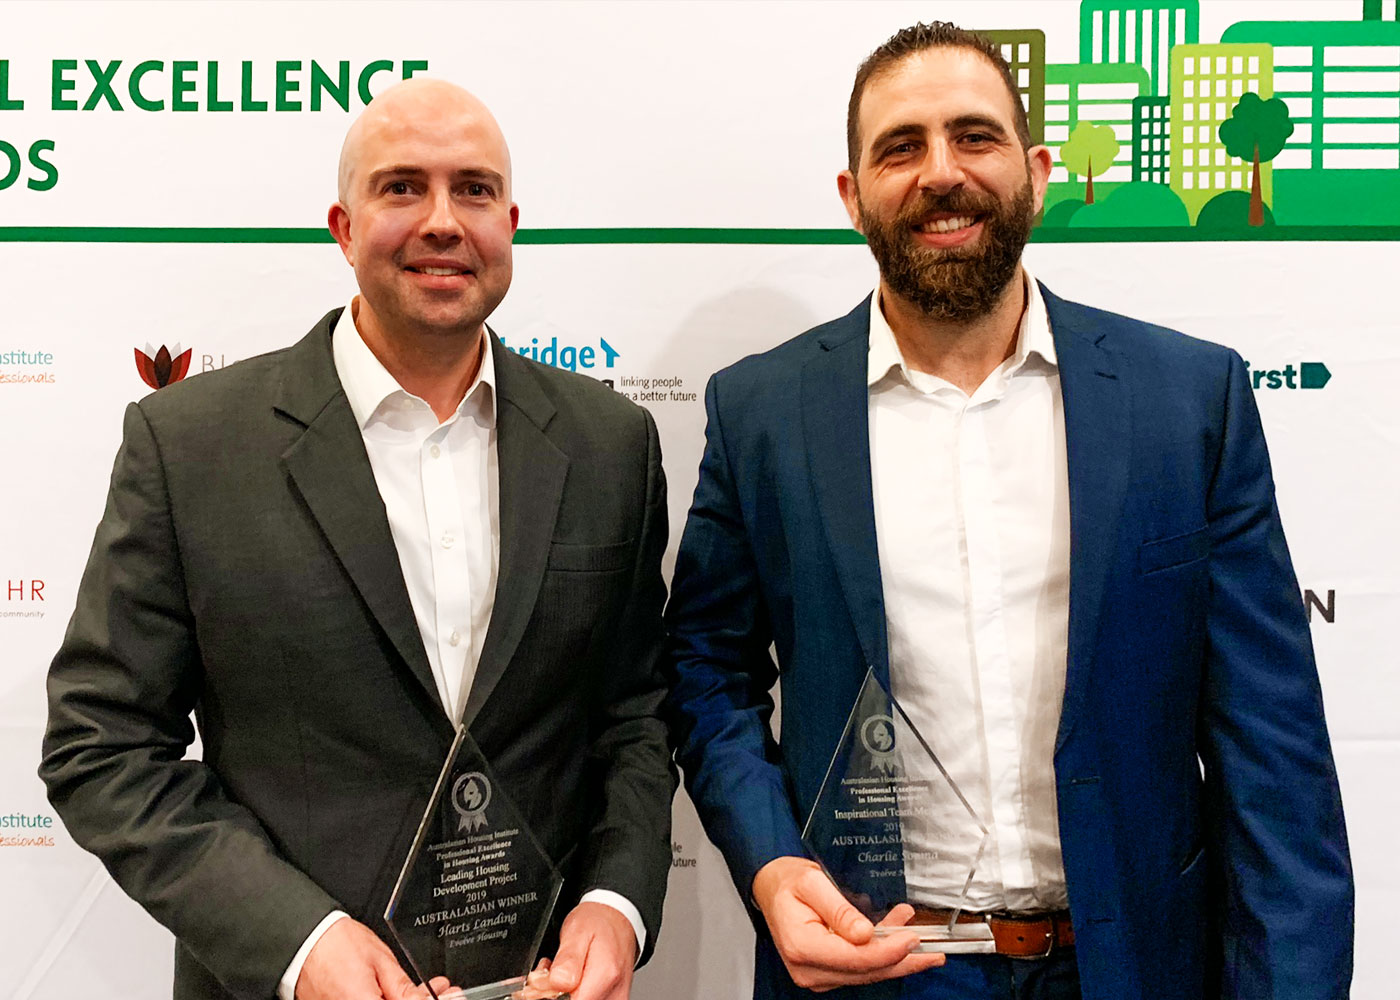 Two men smile to camera while holding awards